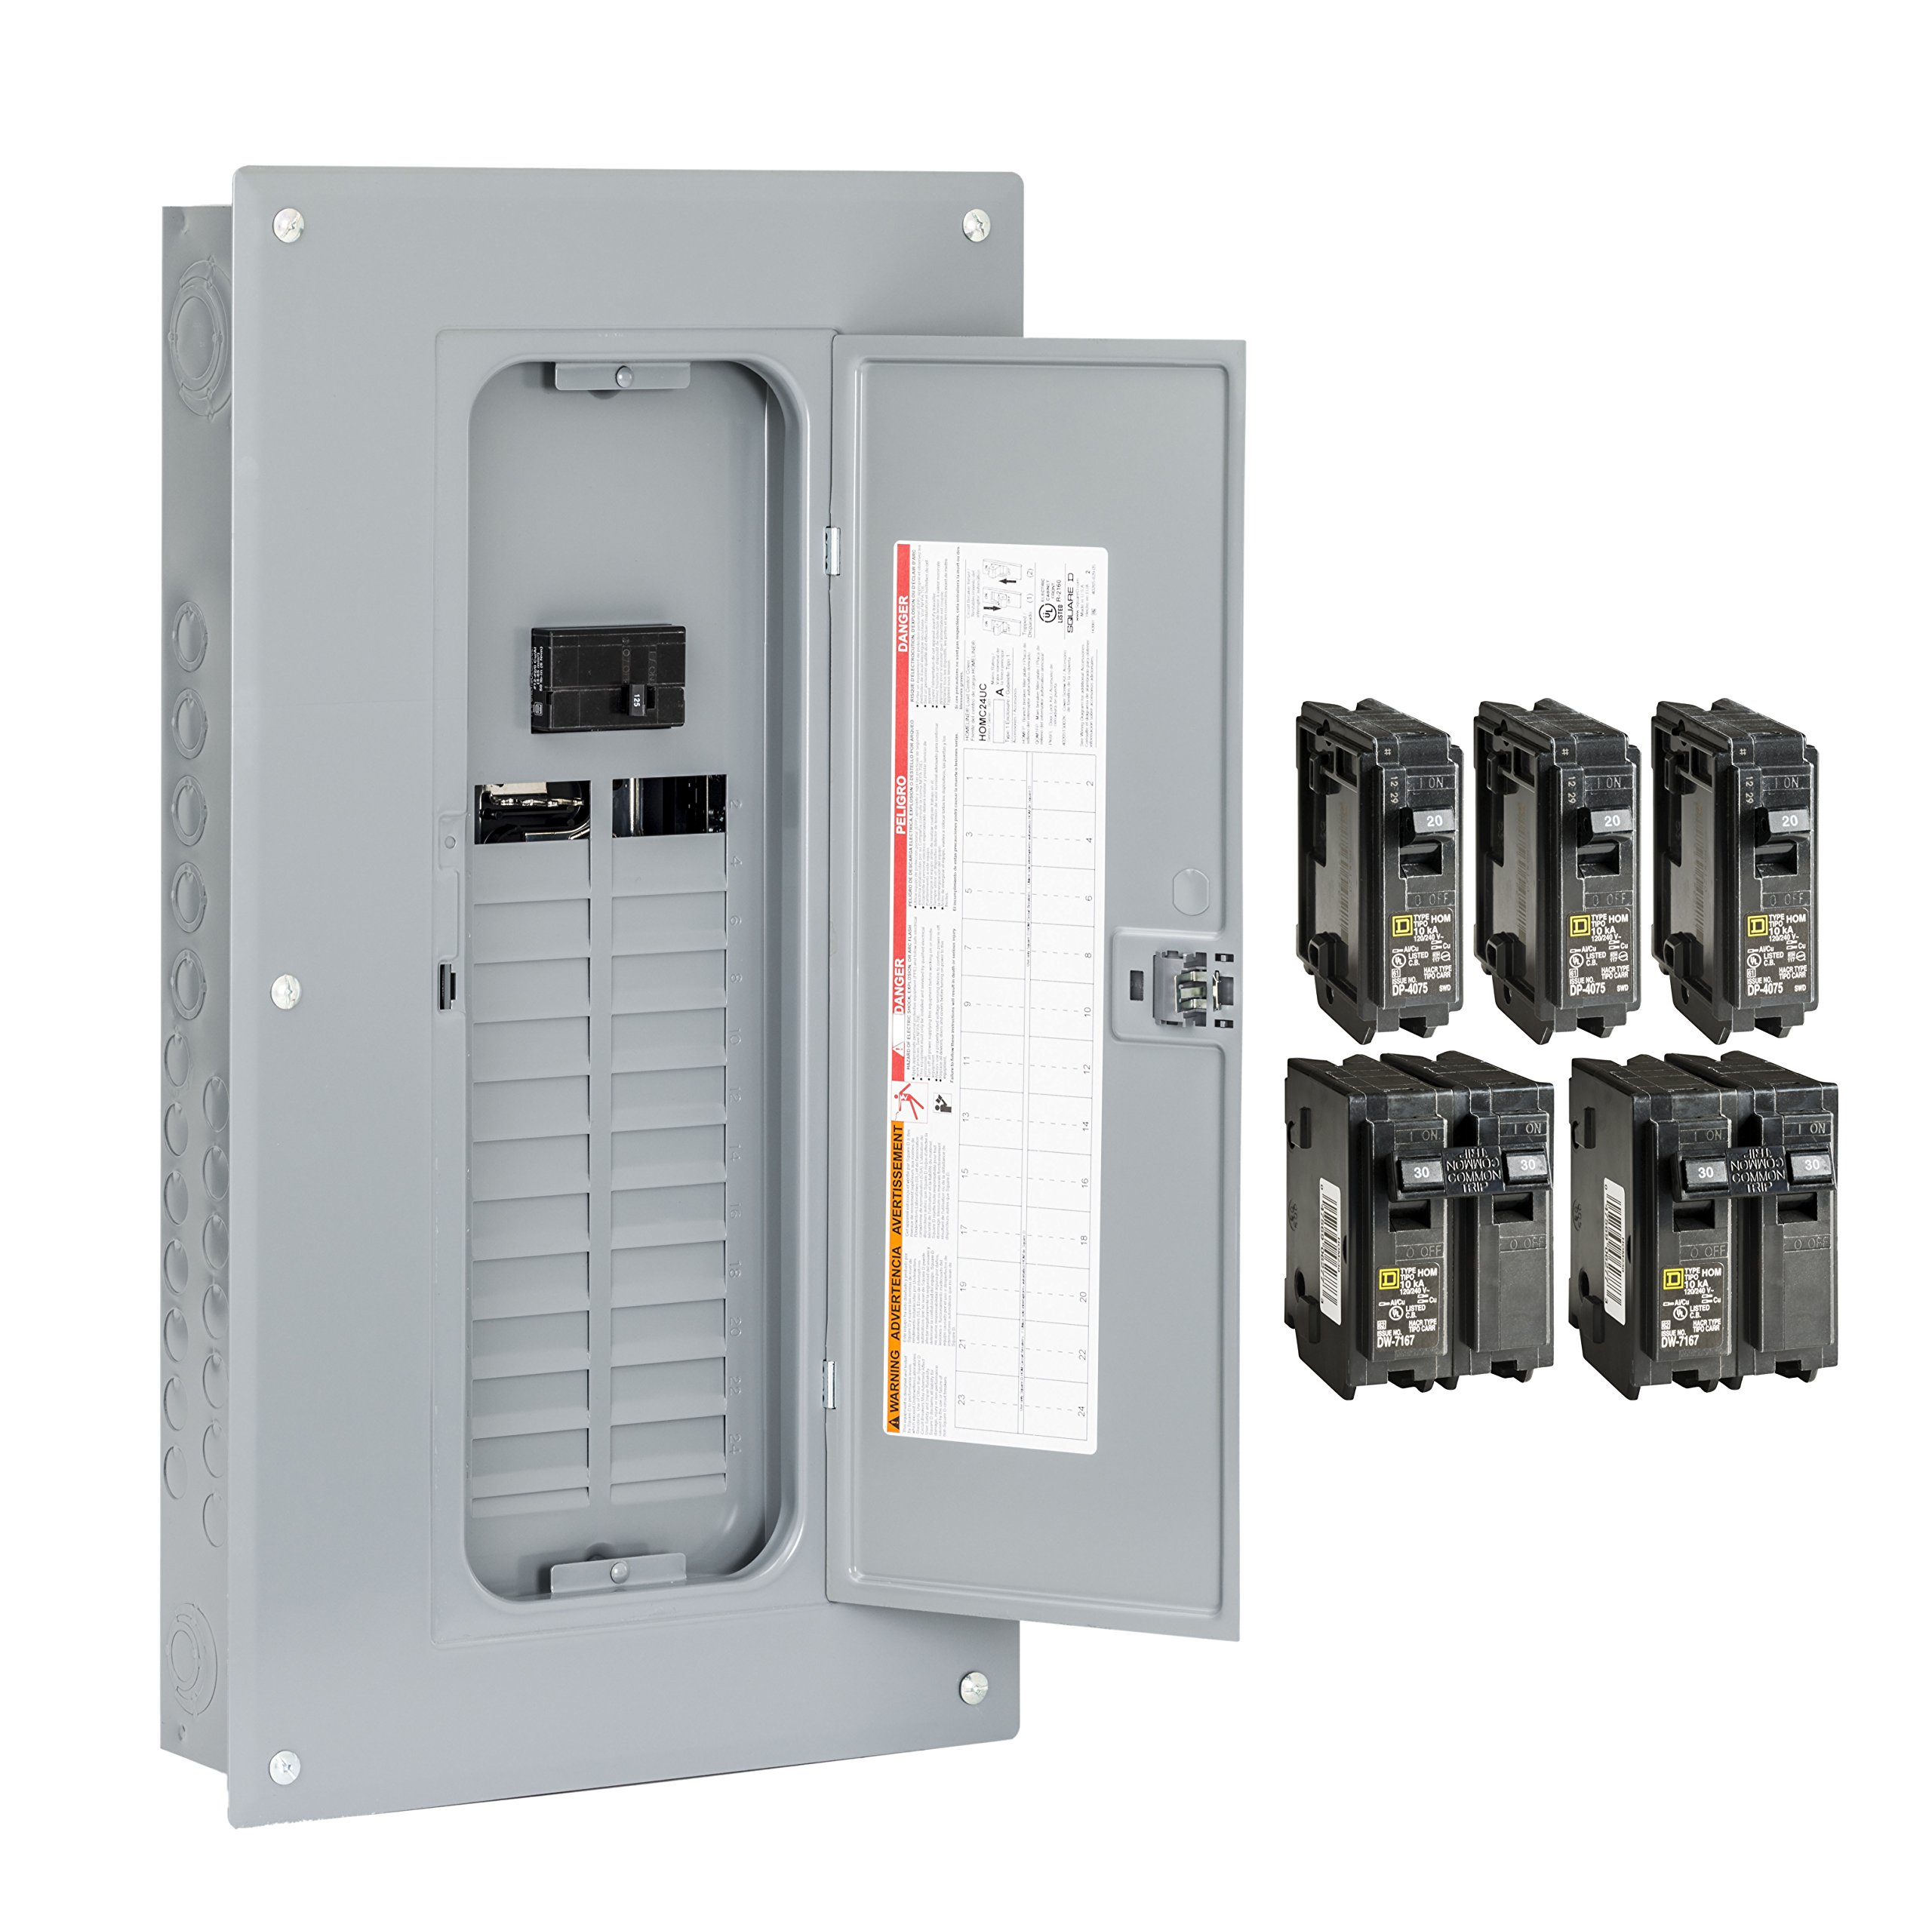 Best Rated In Circuit Breaker Panels Helpful Customer Reviews Wiring Also Electrical Panel Box Together With Leviton Square D By Schneider Electric Hom2448m100pcvp Homeline 100 Amp 24 Space 48 Indoor